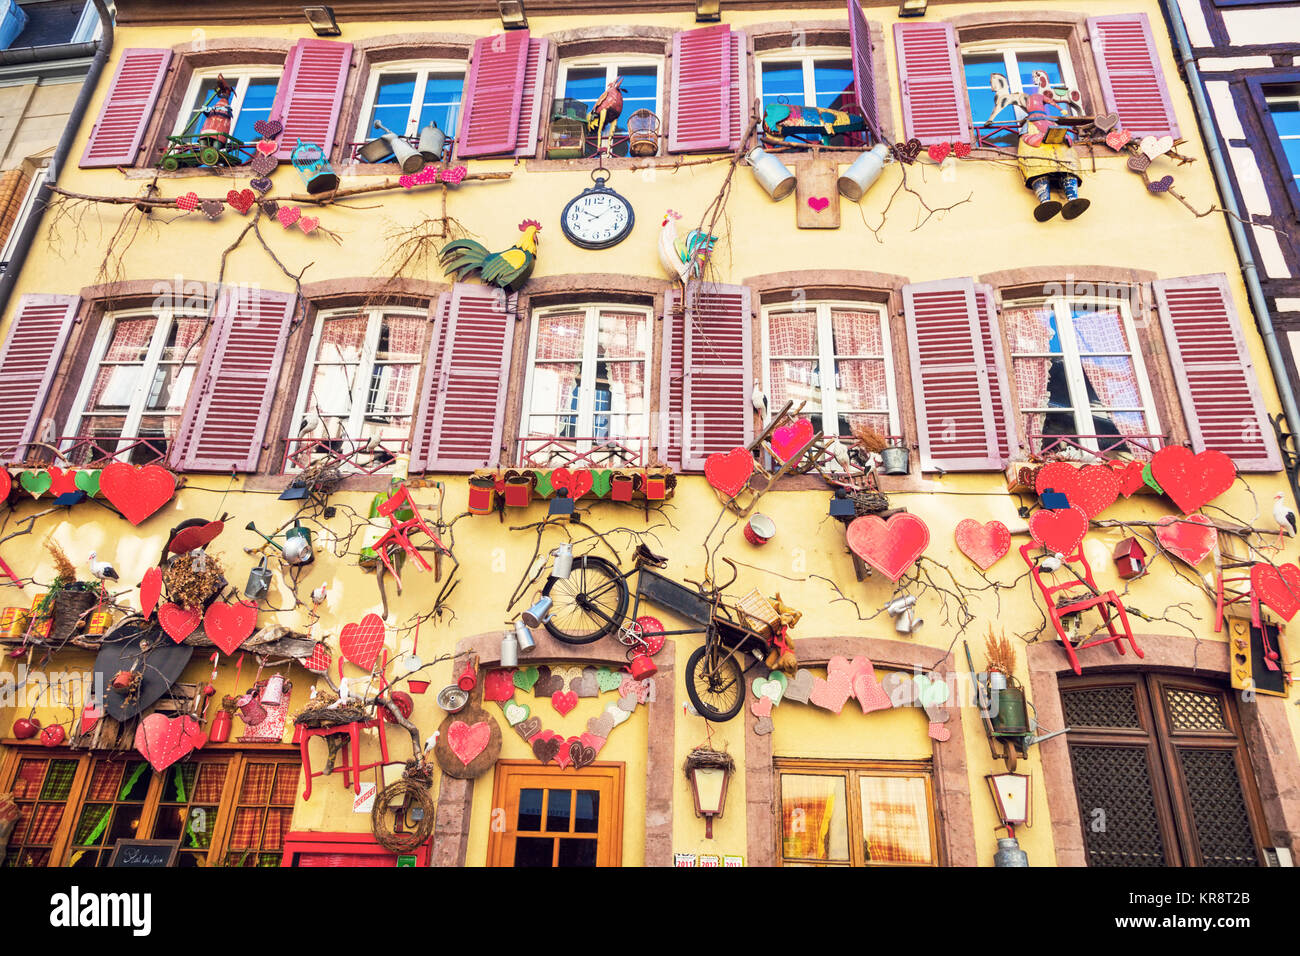 France, Grand Est, Colmar, Facade of traditional townhouse - Stock Image